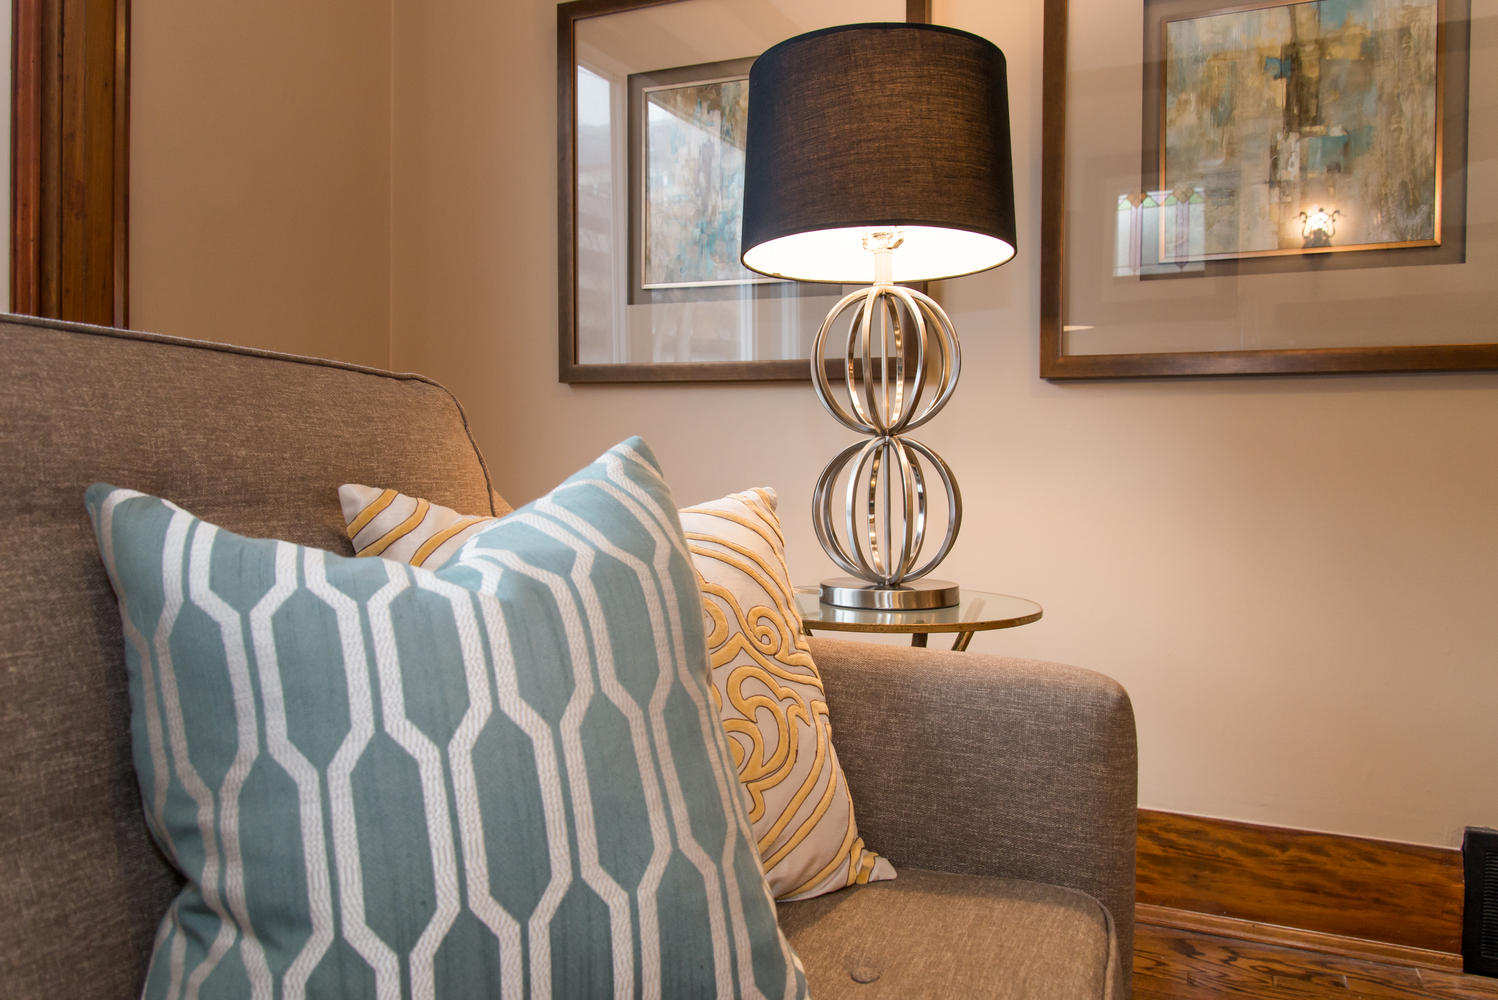 Contemporary Lamp - Home Staging in Bowmanville, Oshawa, Whitby